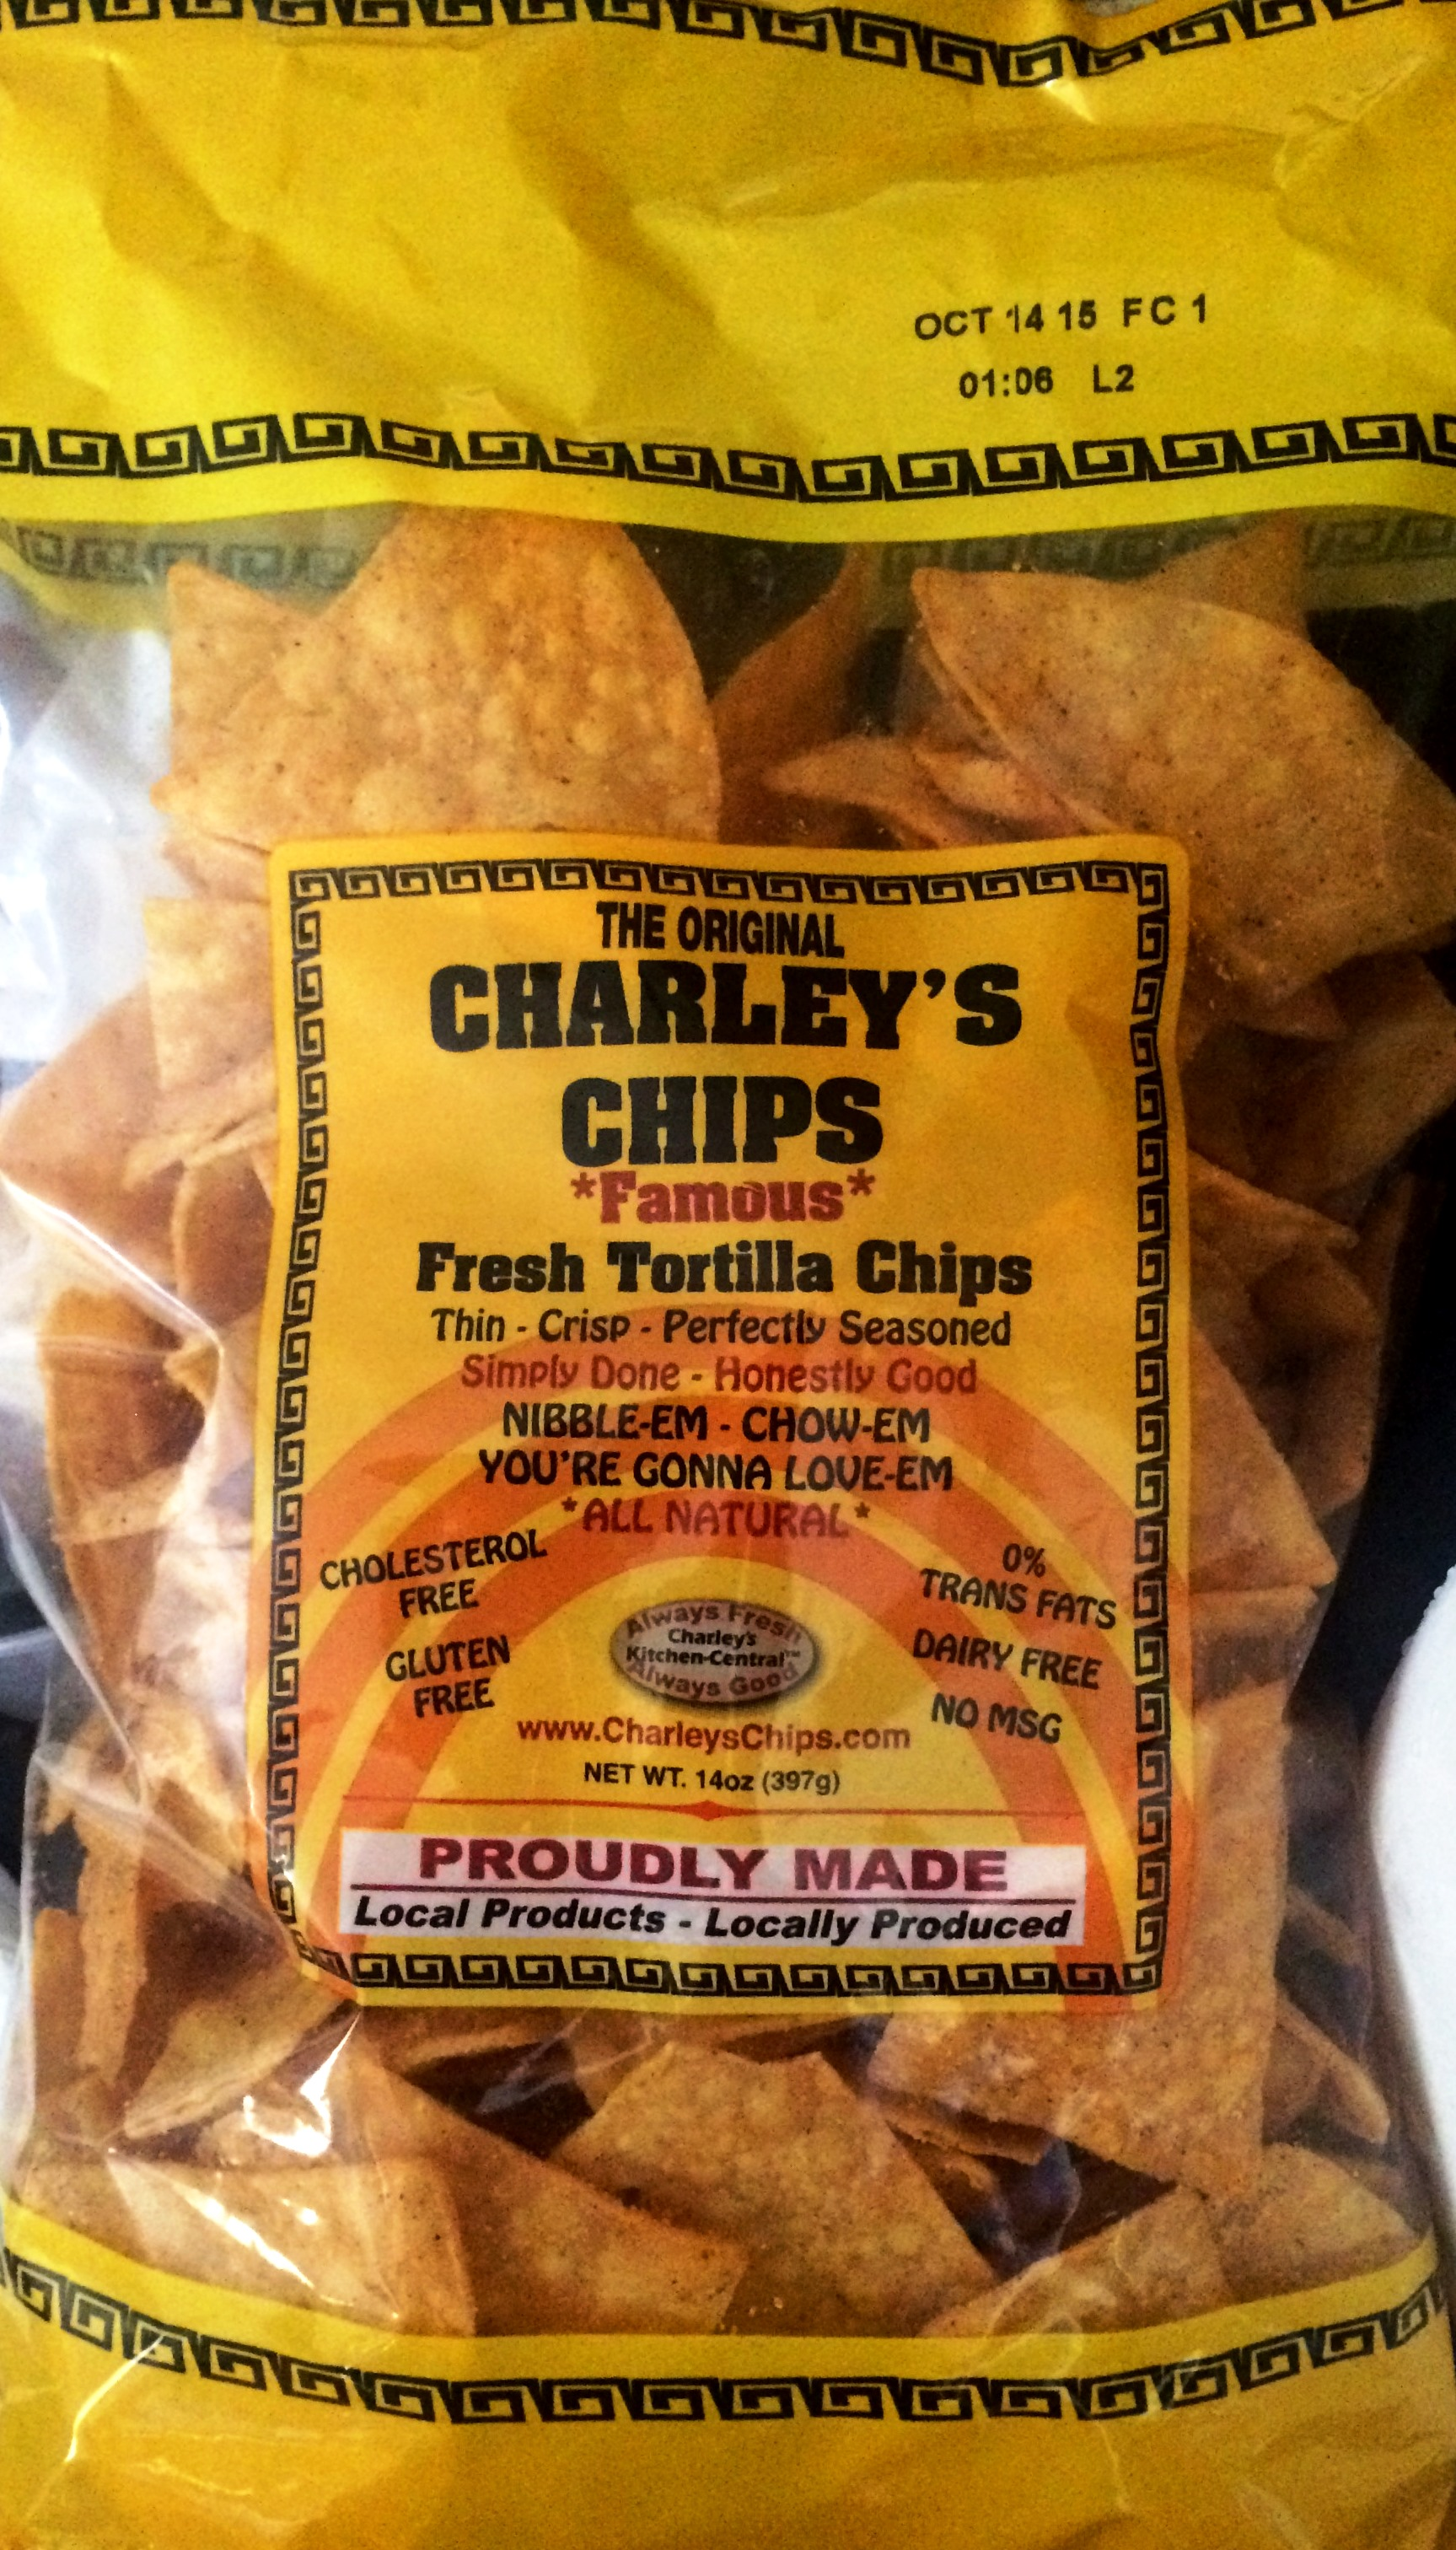 """REVIEW: The Original Charley\'s Chips """"Famous"""" Fresh Tortilla Chips ..."""